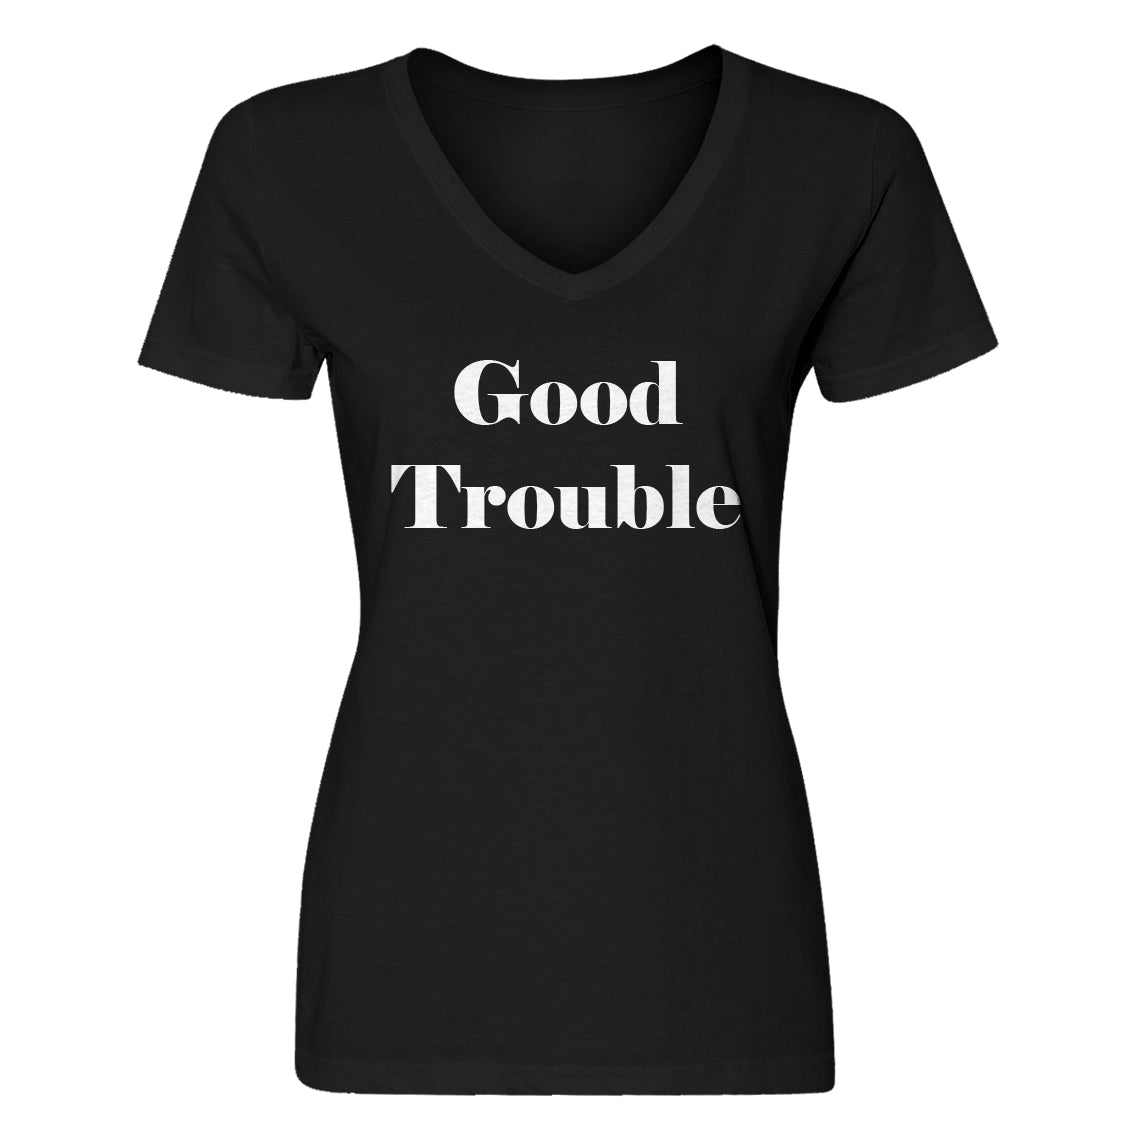 Womens Good Trouble V-Neck T-shirt